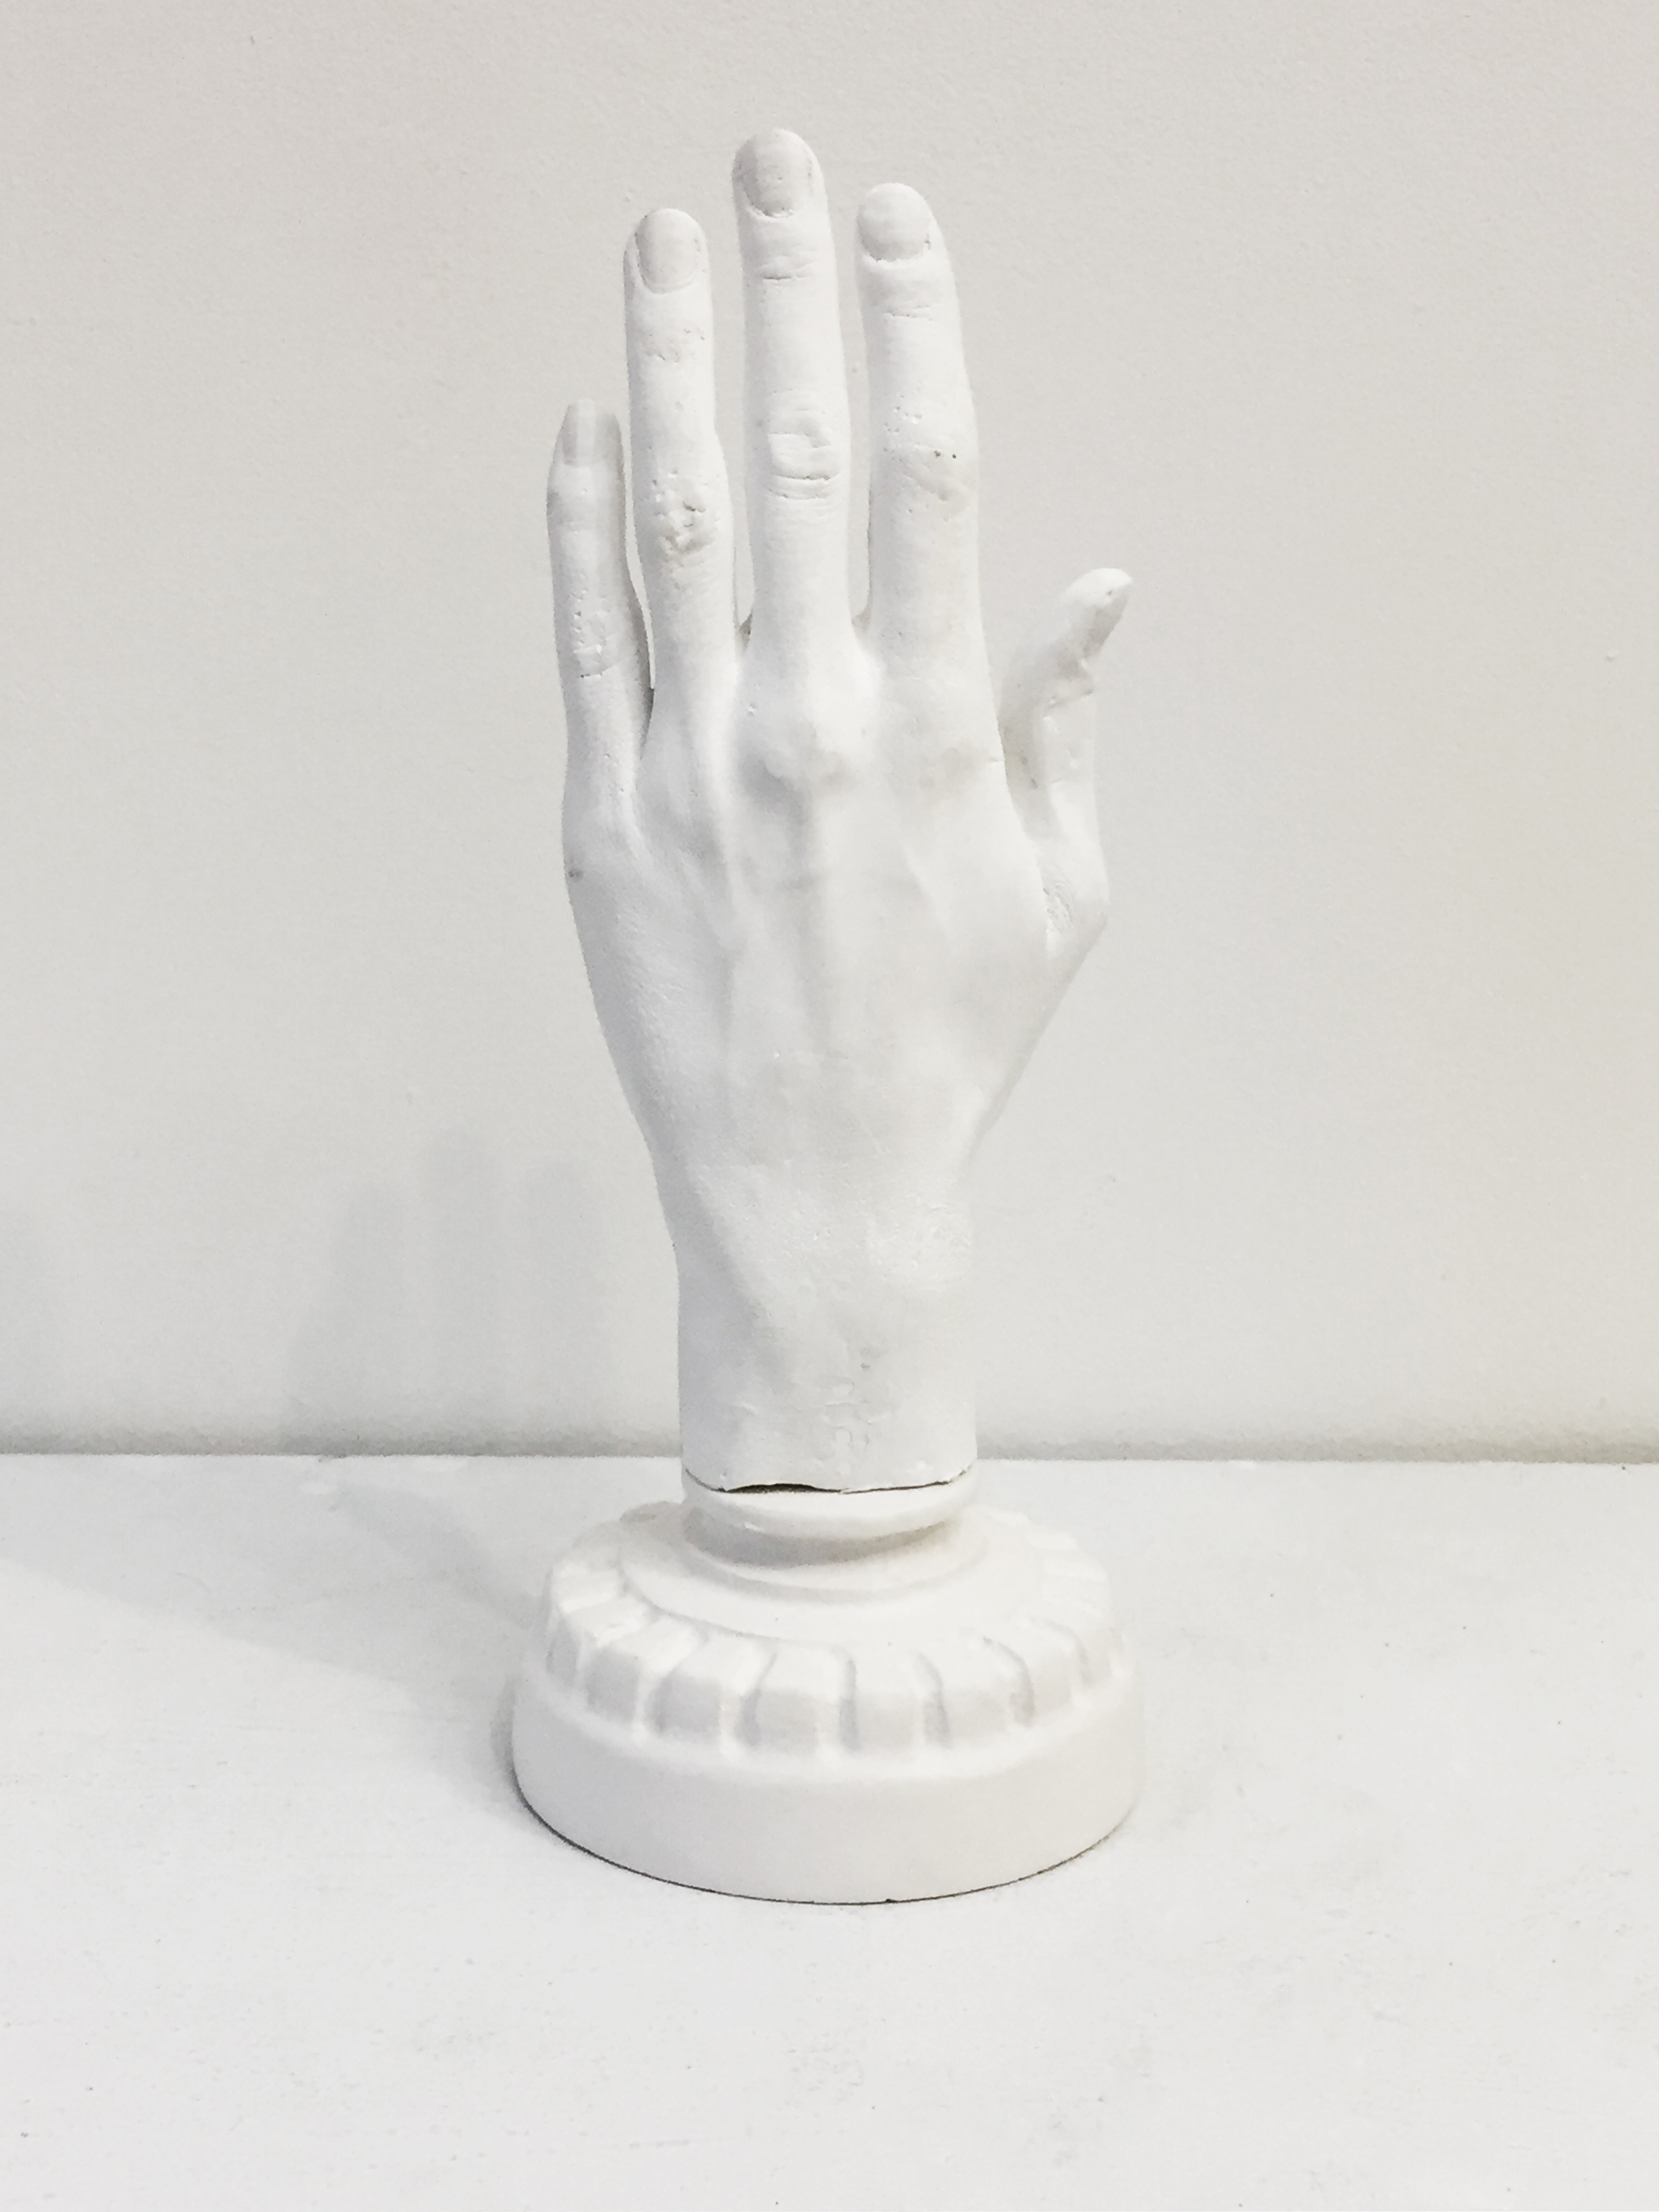 LET ME GIVE YOU A HAND, 2017